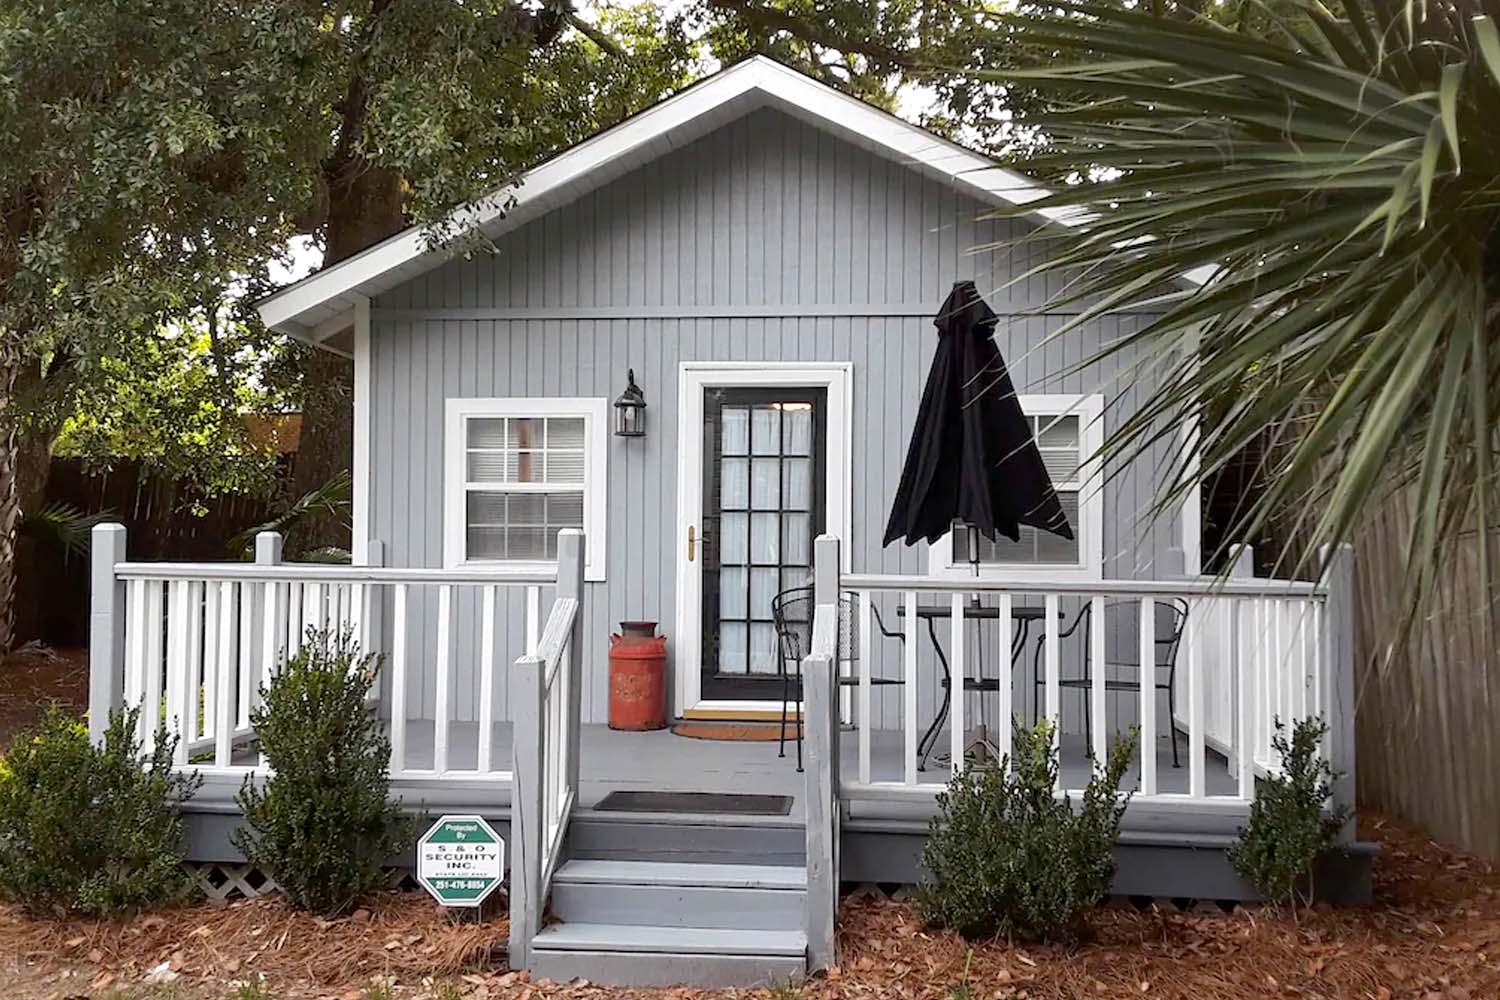 Guesthouse in Mobile, Alabama, USA